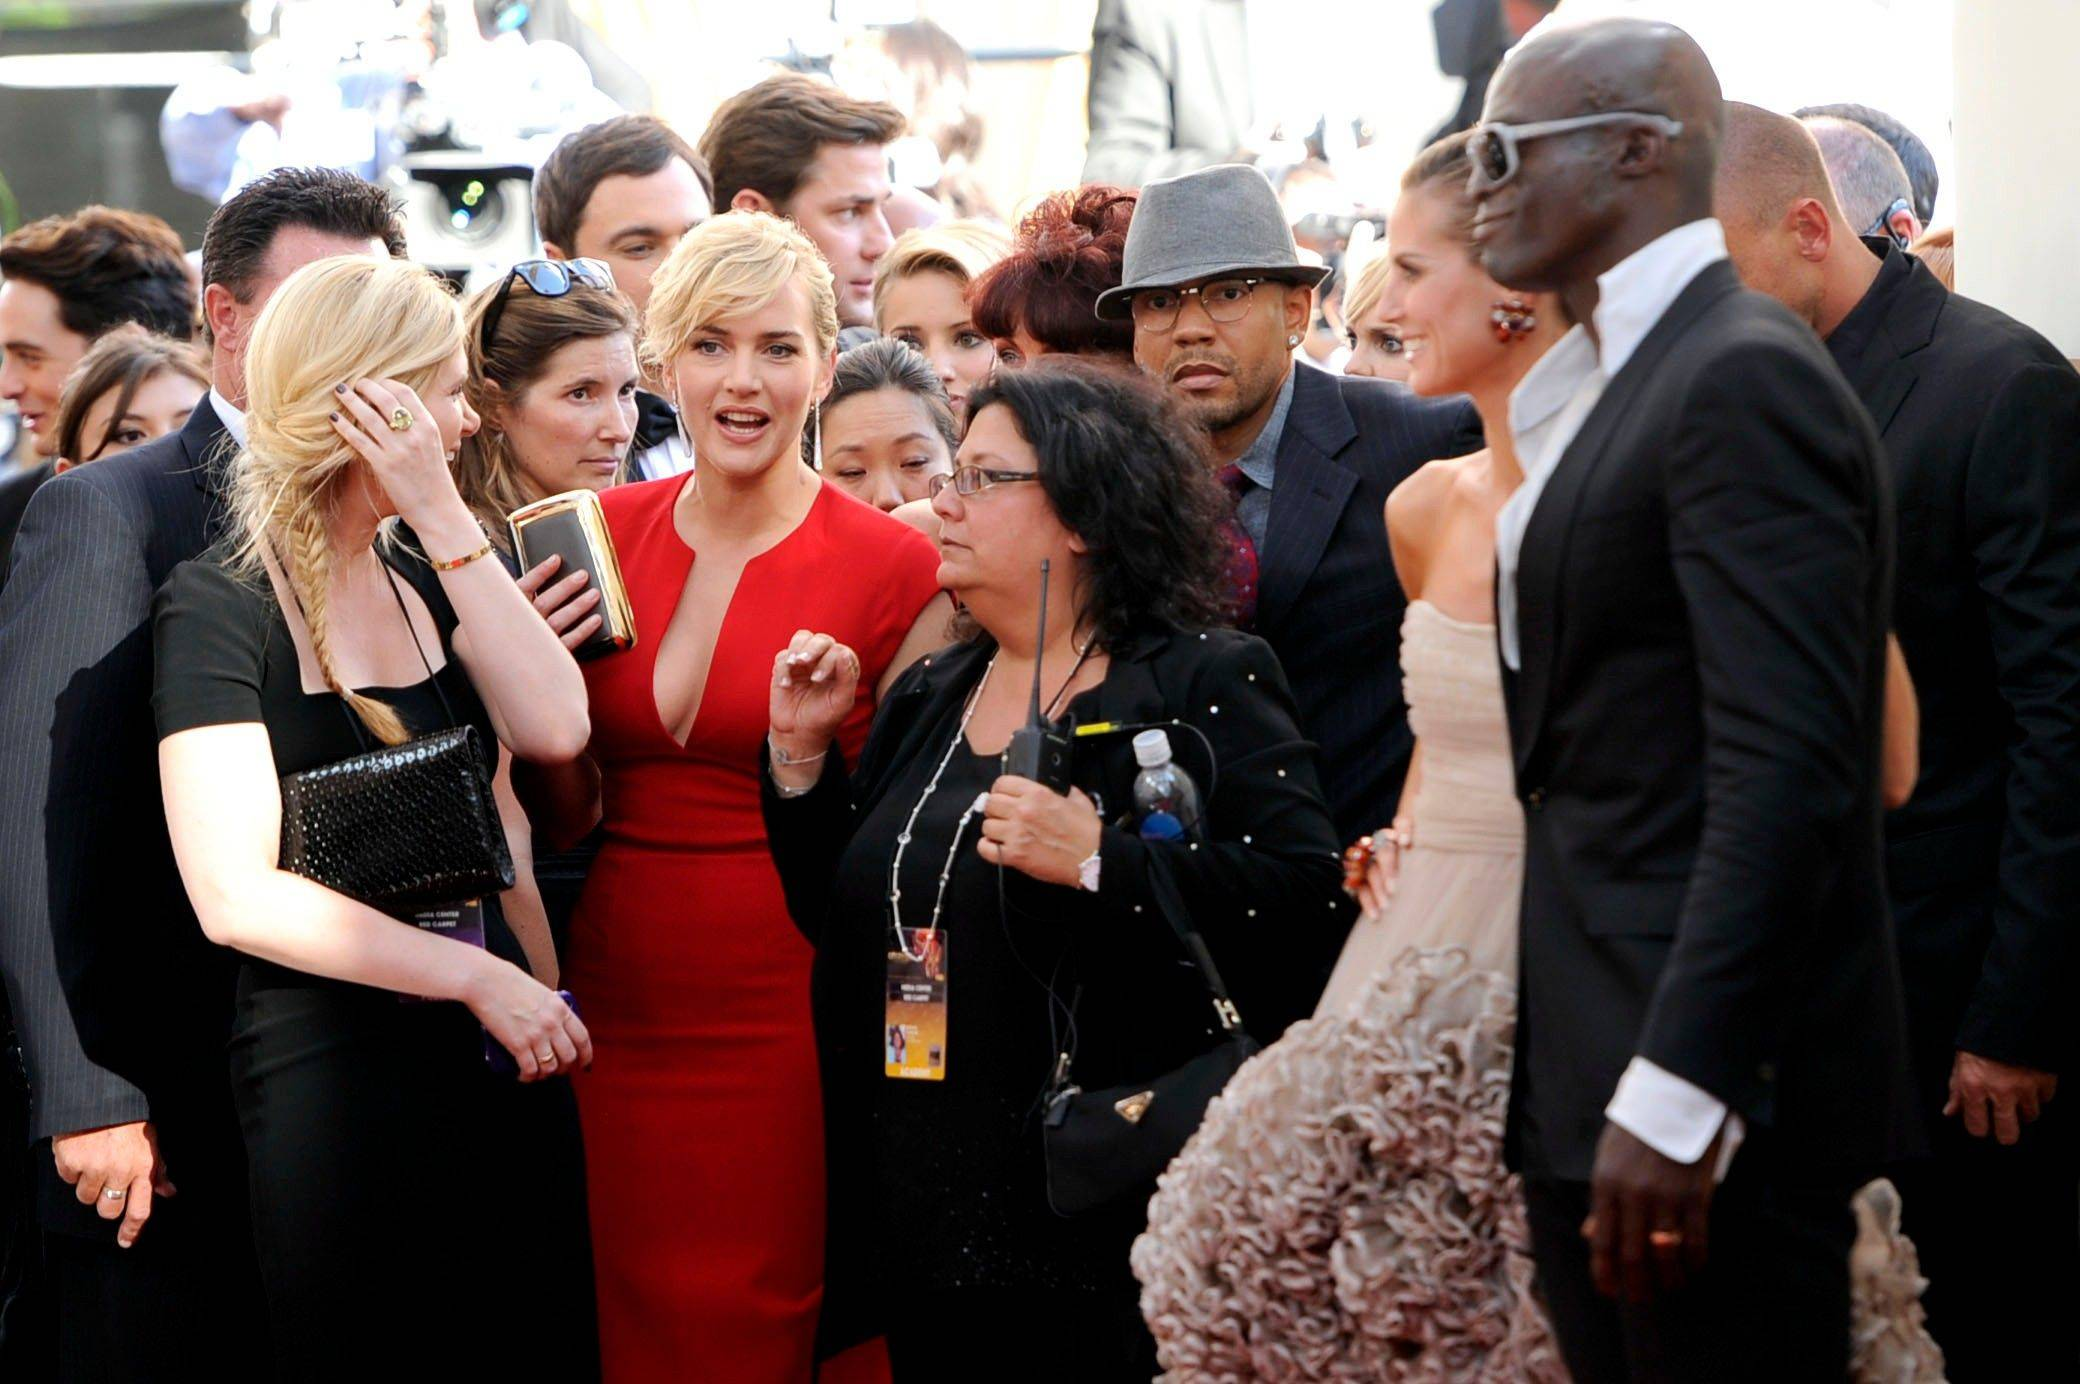 From left, Kate Winslet, Heidi Klum, and Seal get caught in the logjam on the Emmy red carpet.